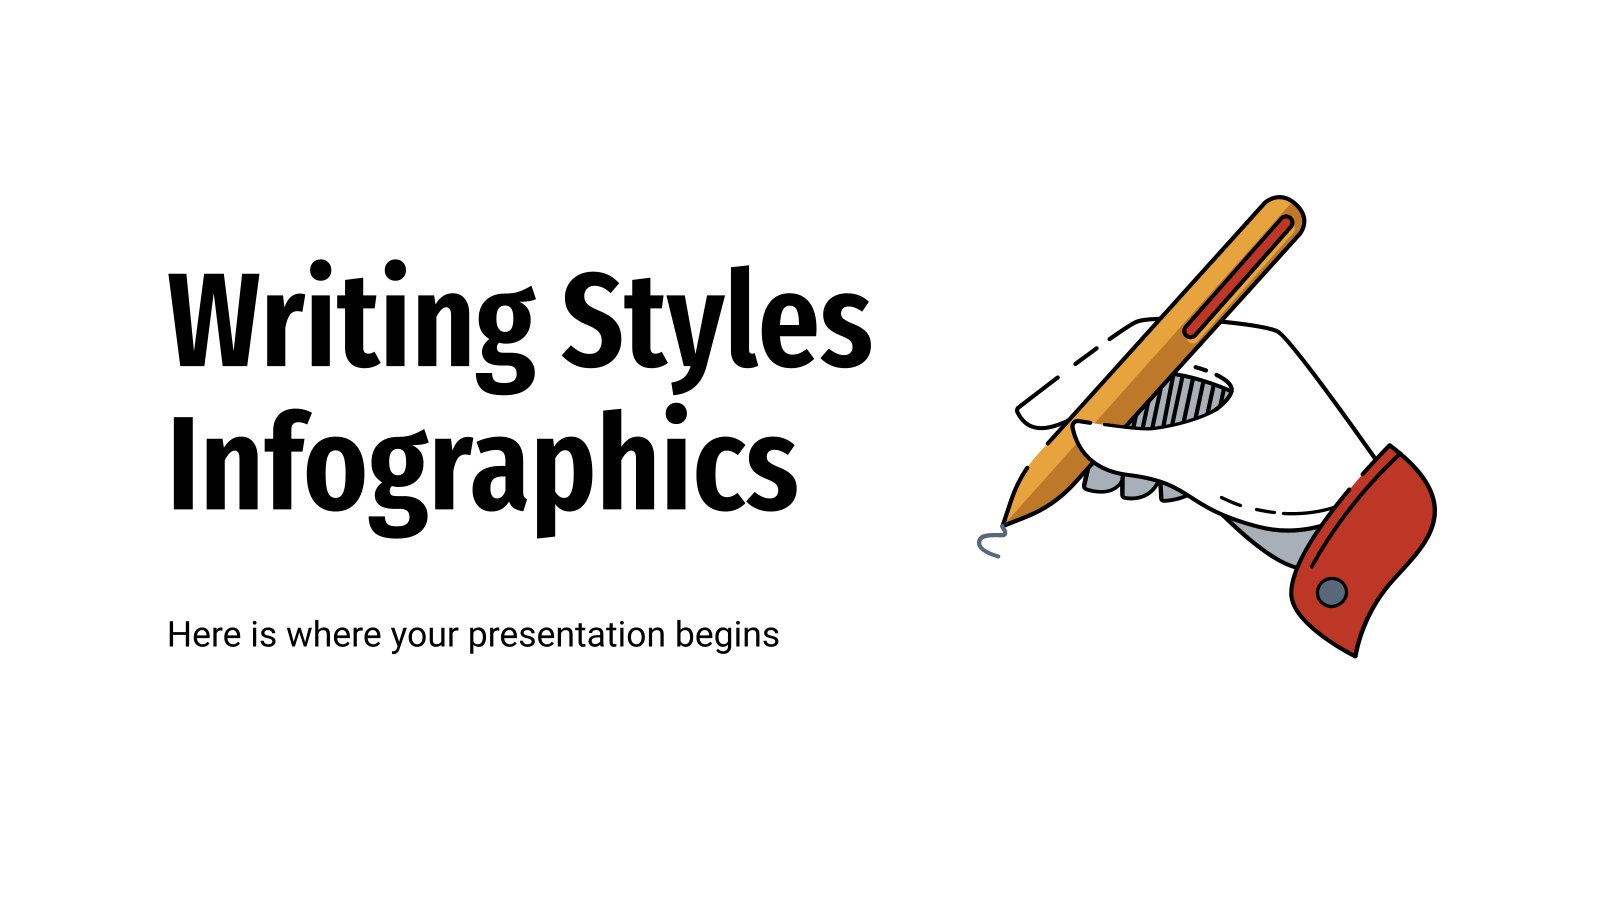 Writing Styles Infographics presentation template